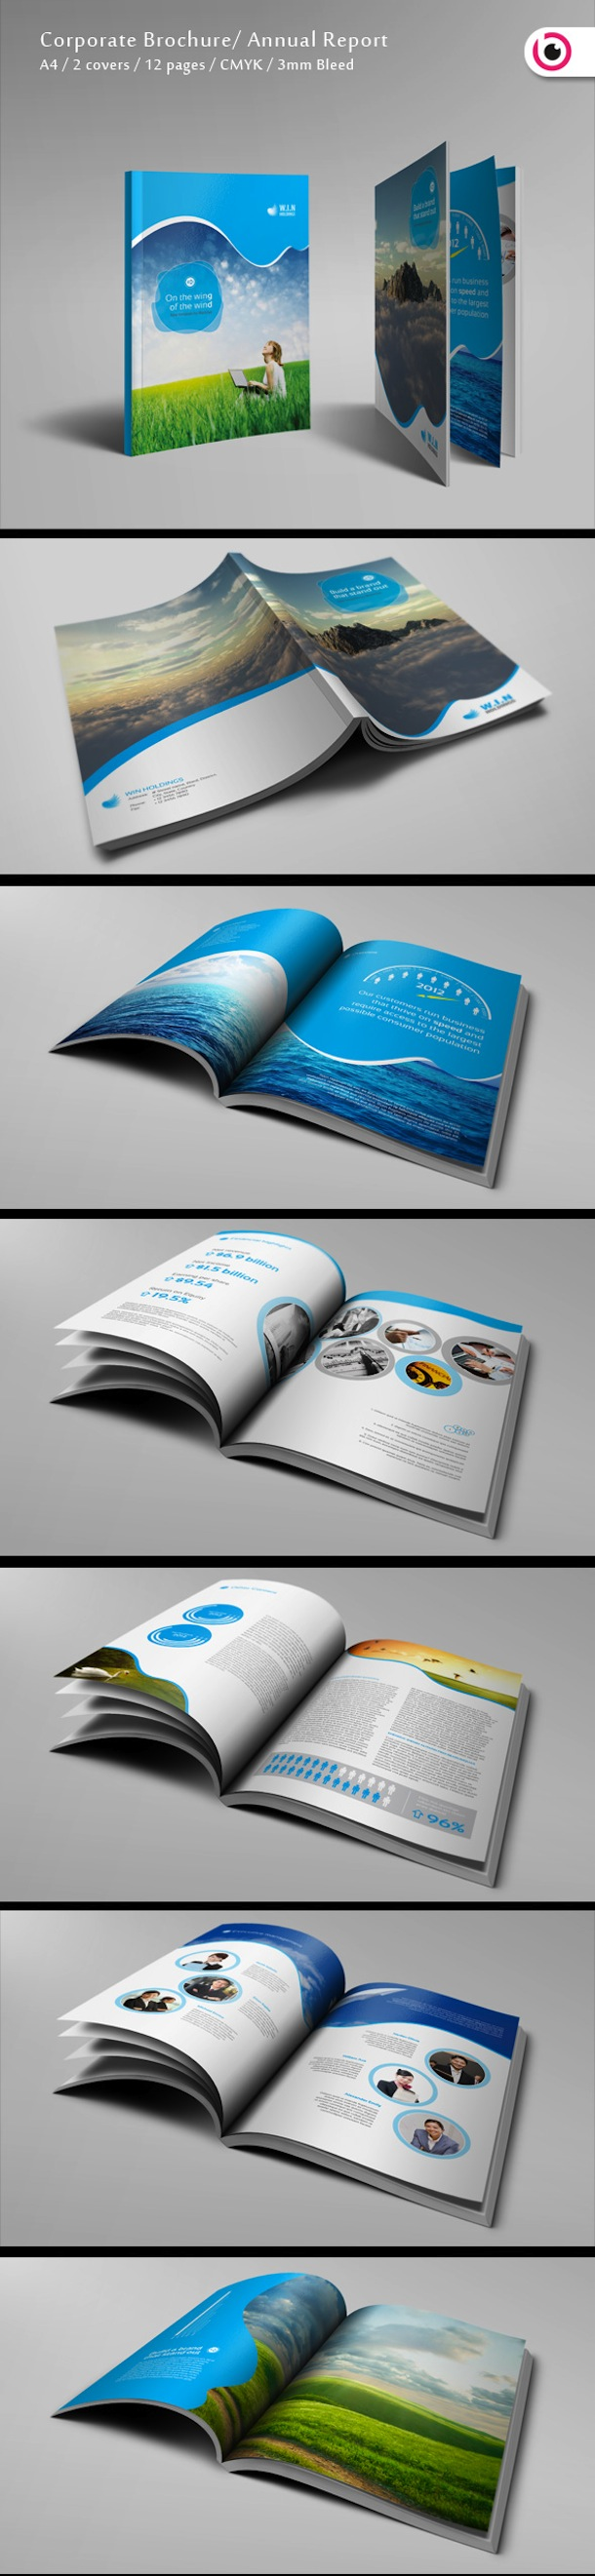 modern and professional brochure designs printbench annual